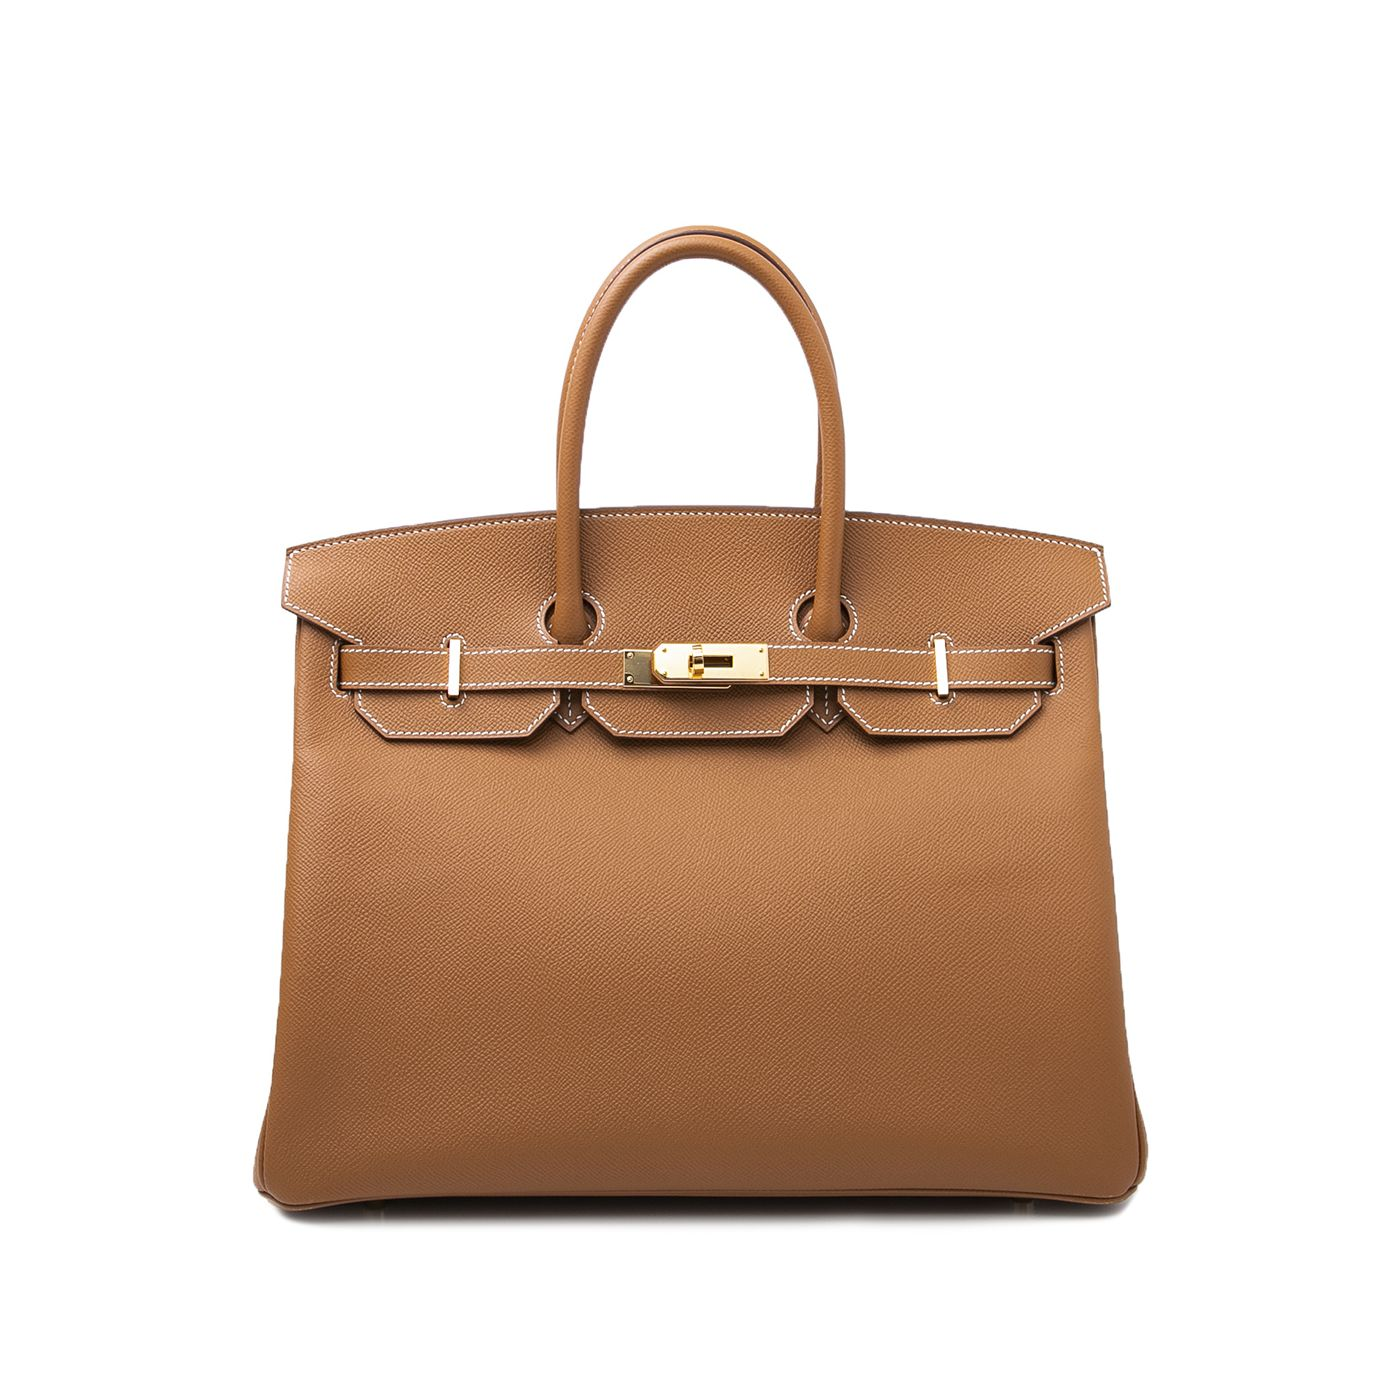 Hermes Gold Birkin Bag 35